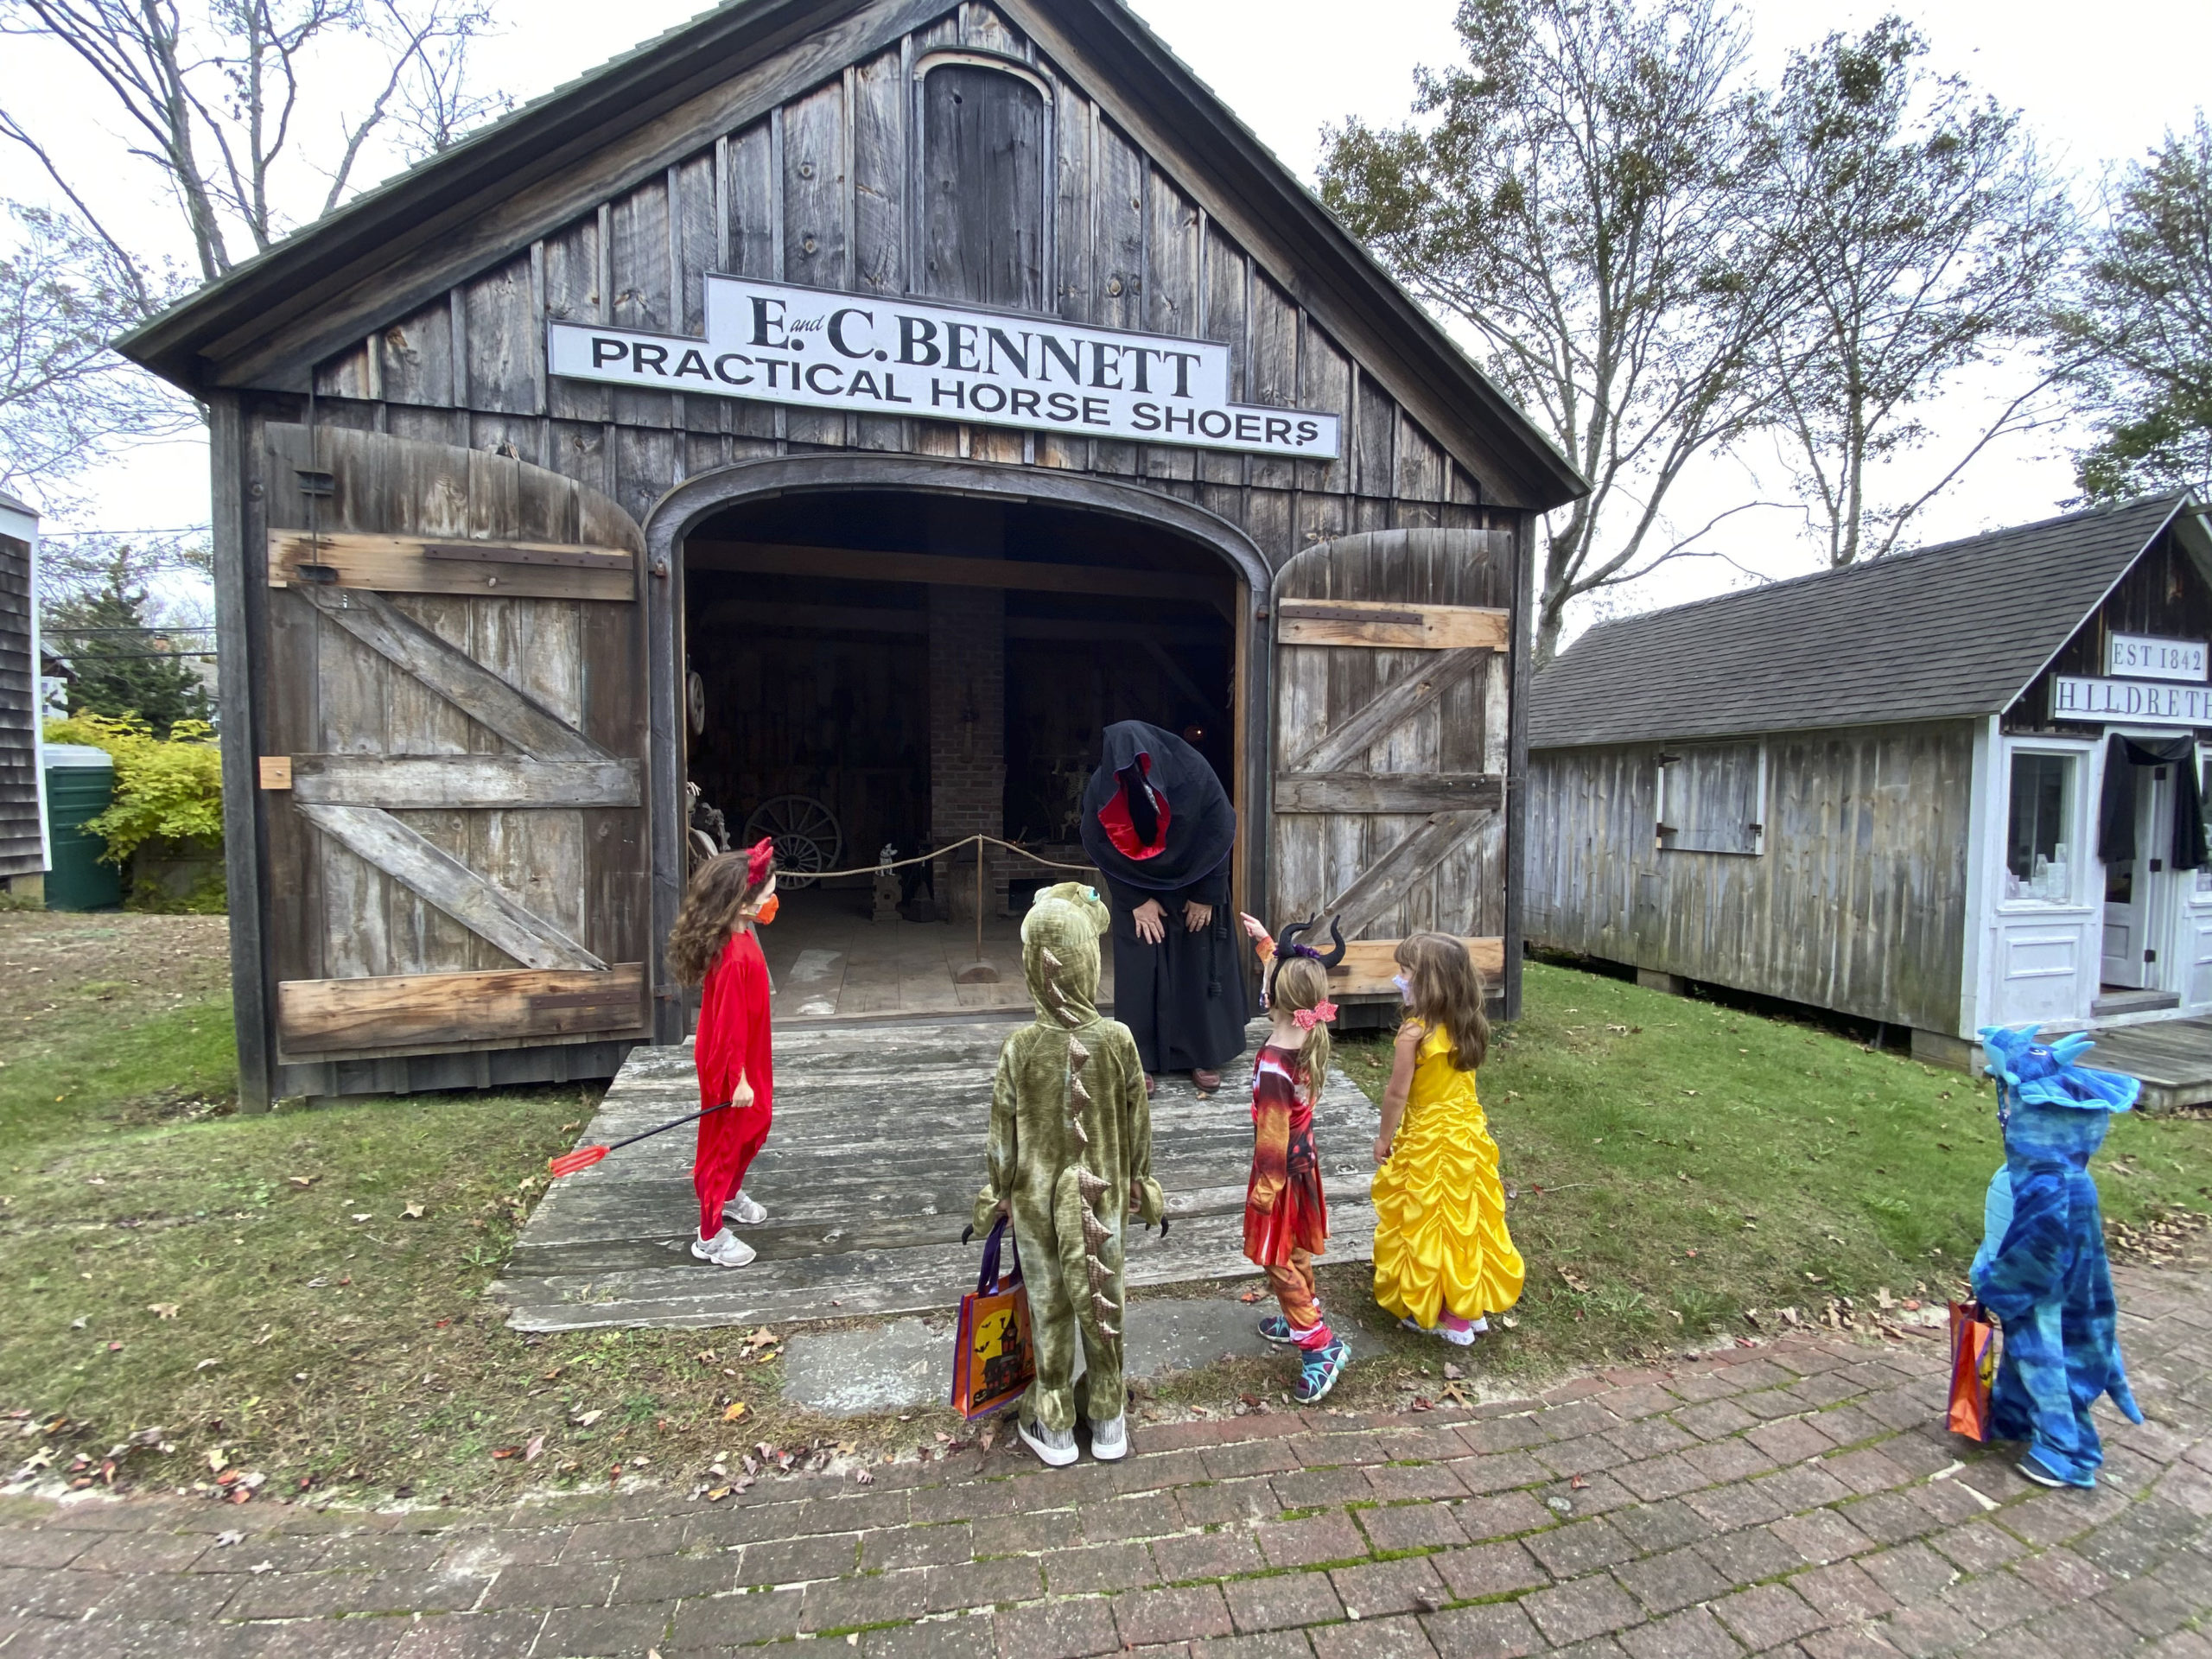 Children visit the Haunted Village at the Southampton History Museum on Saturday. The grounds of the Rogers Mansion are decorated for Halloween and are inhabited by witches, ghouls and even a plague doctor. The Haunted Village will be opened on Saturday October 31 from 2 to 4 p.m. Visitors are encouraged to wear their costumes. Reservations required with timed entrances for a 20 minute tour. Limited to 100 people at one time, only family groups of up to 6 allowed per reservation. Children must be accompanied by an adult with a reservation. Facemasks required and social distancing strictly enforced. Call (631) 283-2494 or visit southamptonhistory.org for more information. DANA SHAW